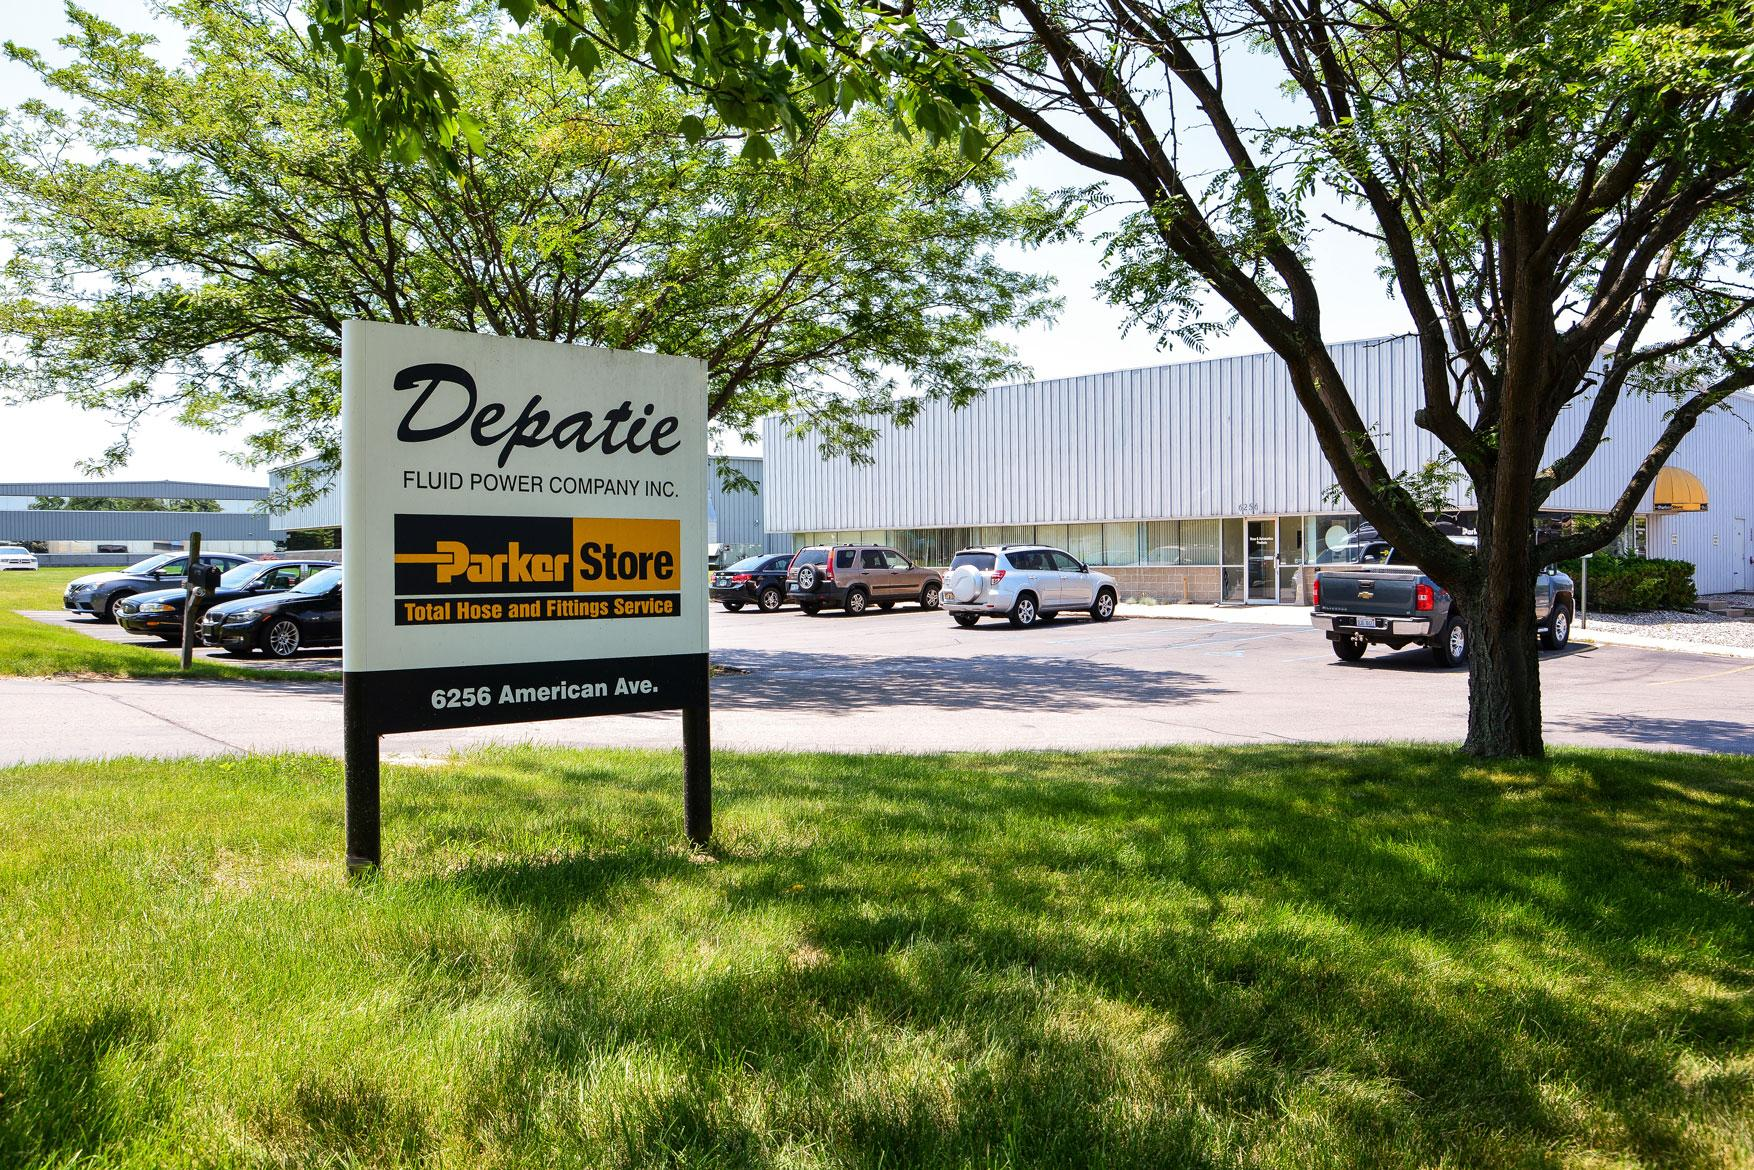 Depatie Corporate Headquarters